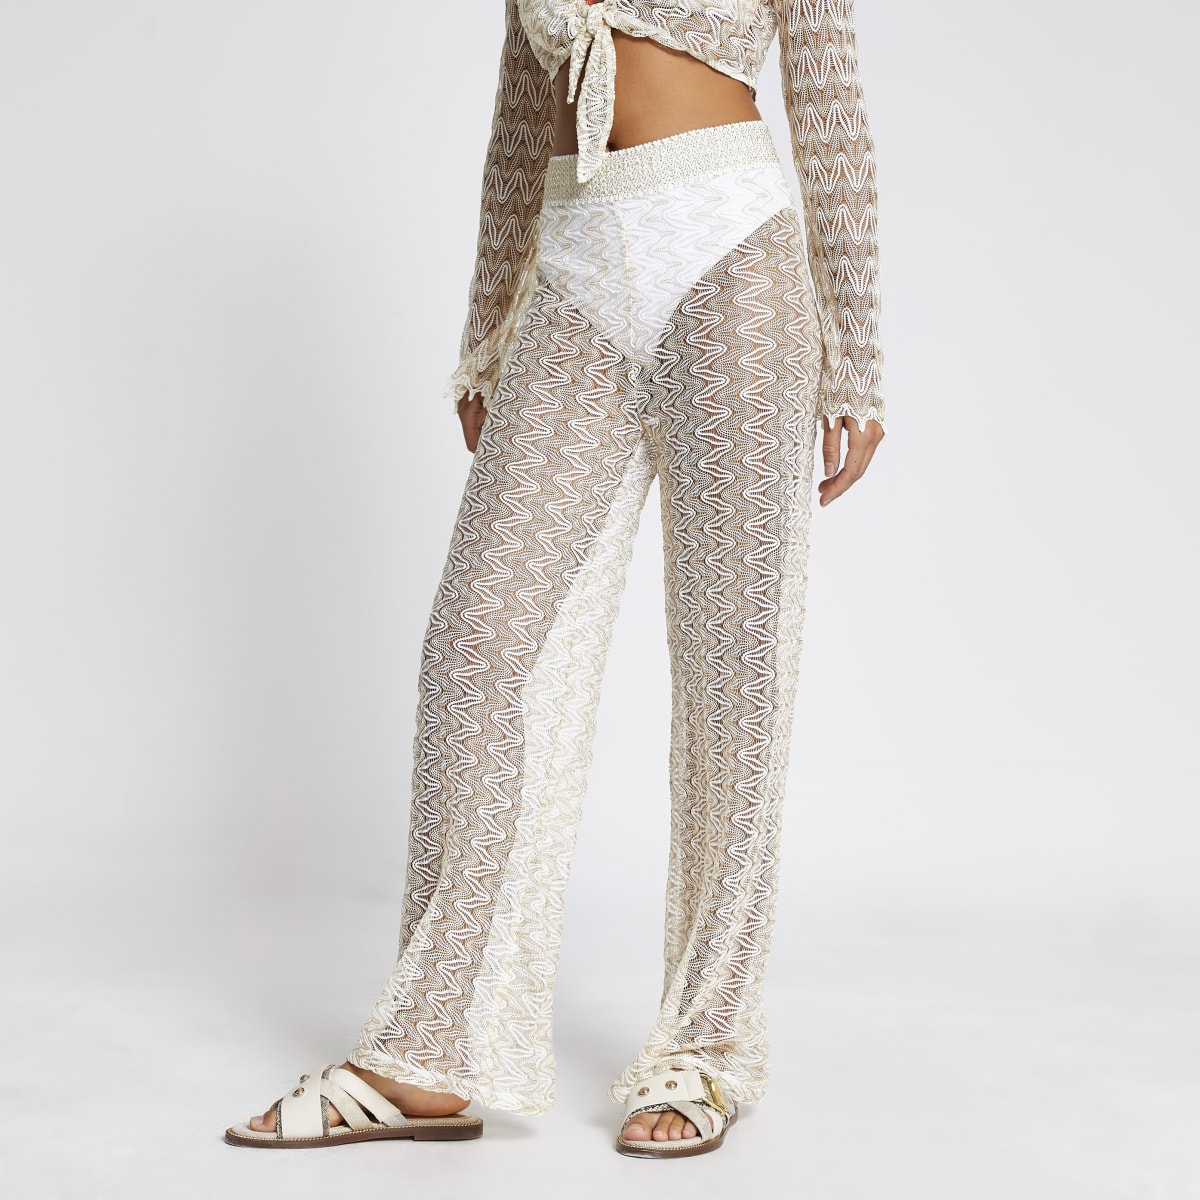 Cream zig-zag knit flared beach trousers